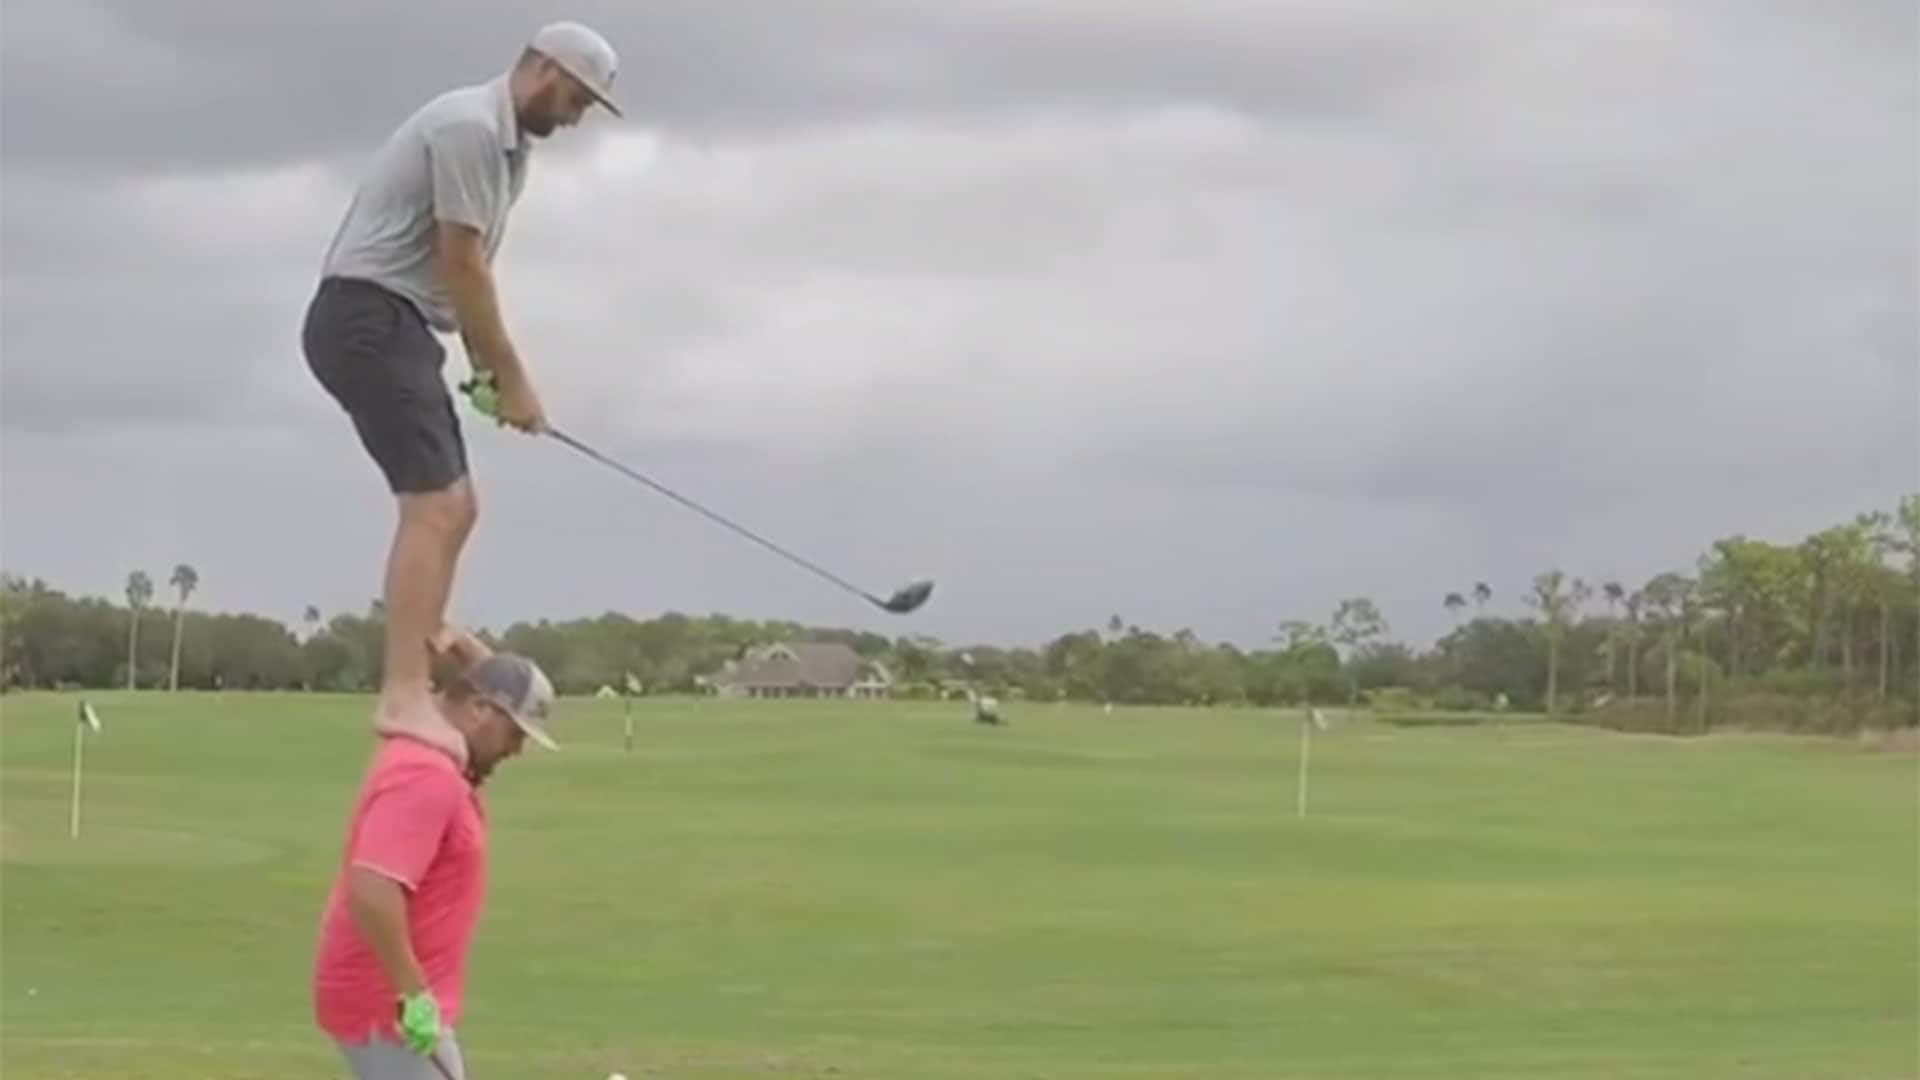 Watch: Guy stands on friend's shoulders for crazy trick shot | Golf